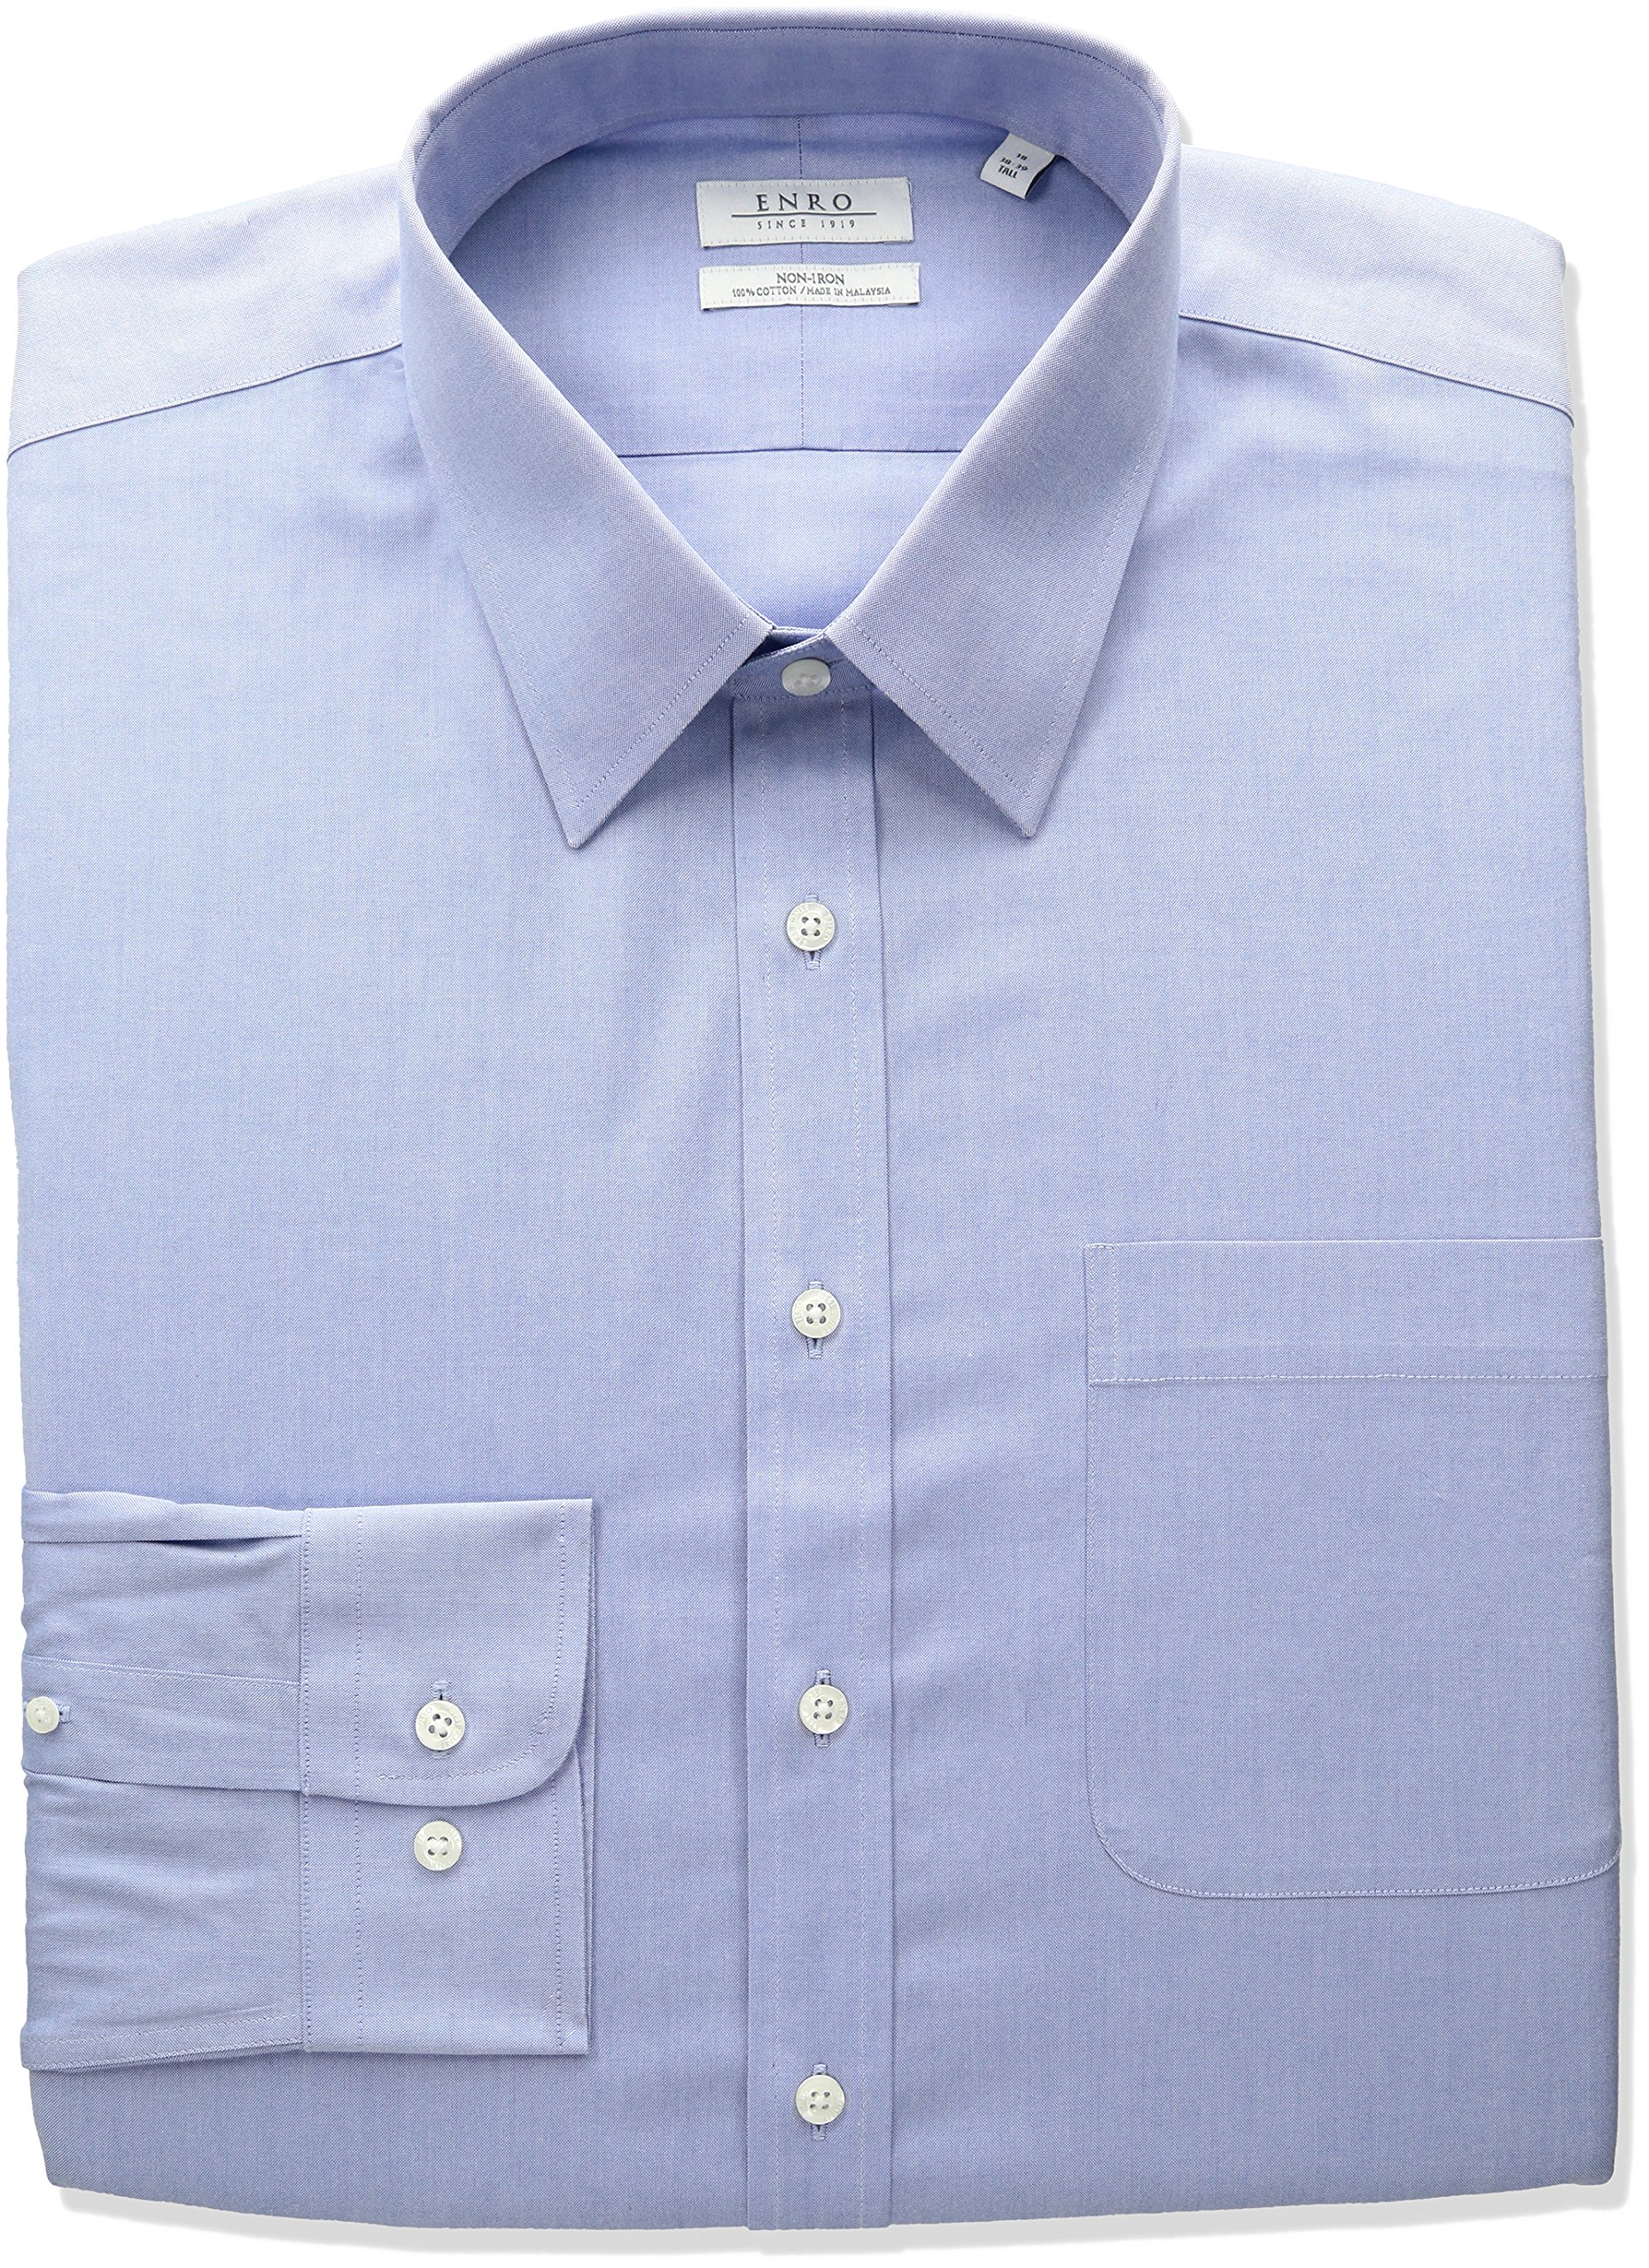 Enro Men's Classic Fit Big-Tall Solid Point Collar Dress Shirt, Light Blue 17.5'' Neck 38''-39'' Sleeve